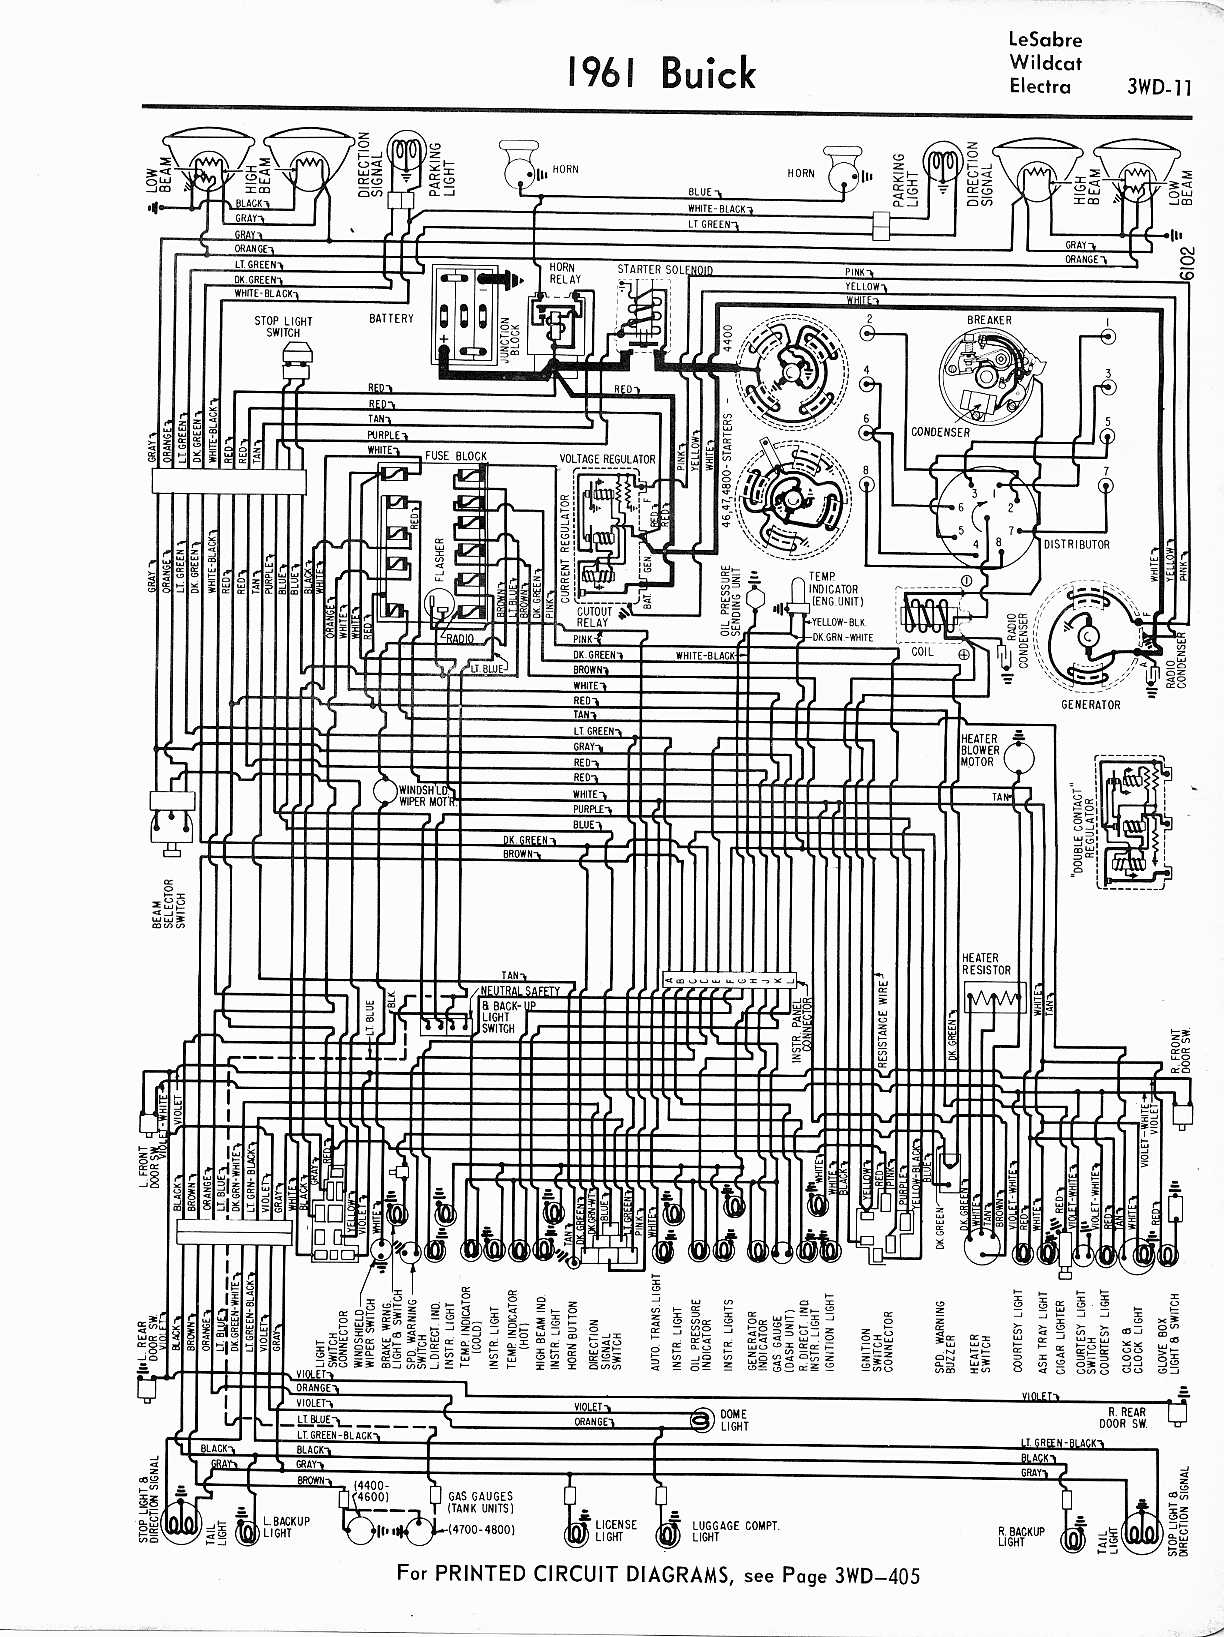 MWireBuic65_3WD 011 2005 buick lesabre wiring diagram 2005 chevrolet tahoe wiring rj48x wiring diagram at crackthecode.co